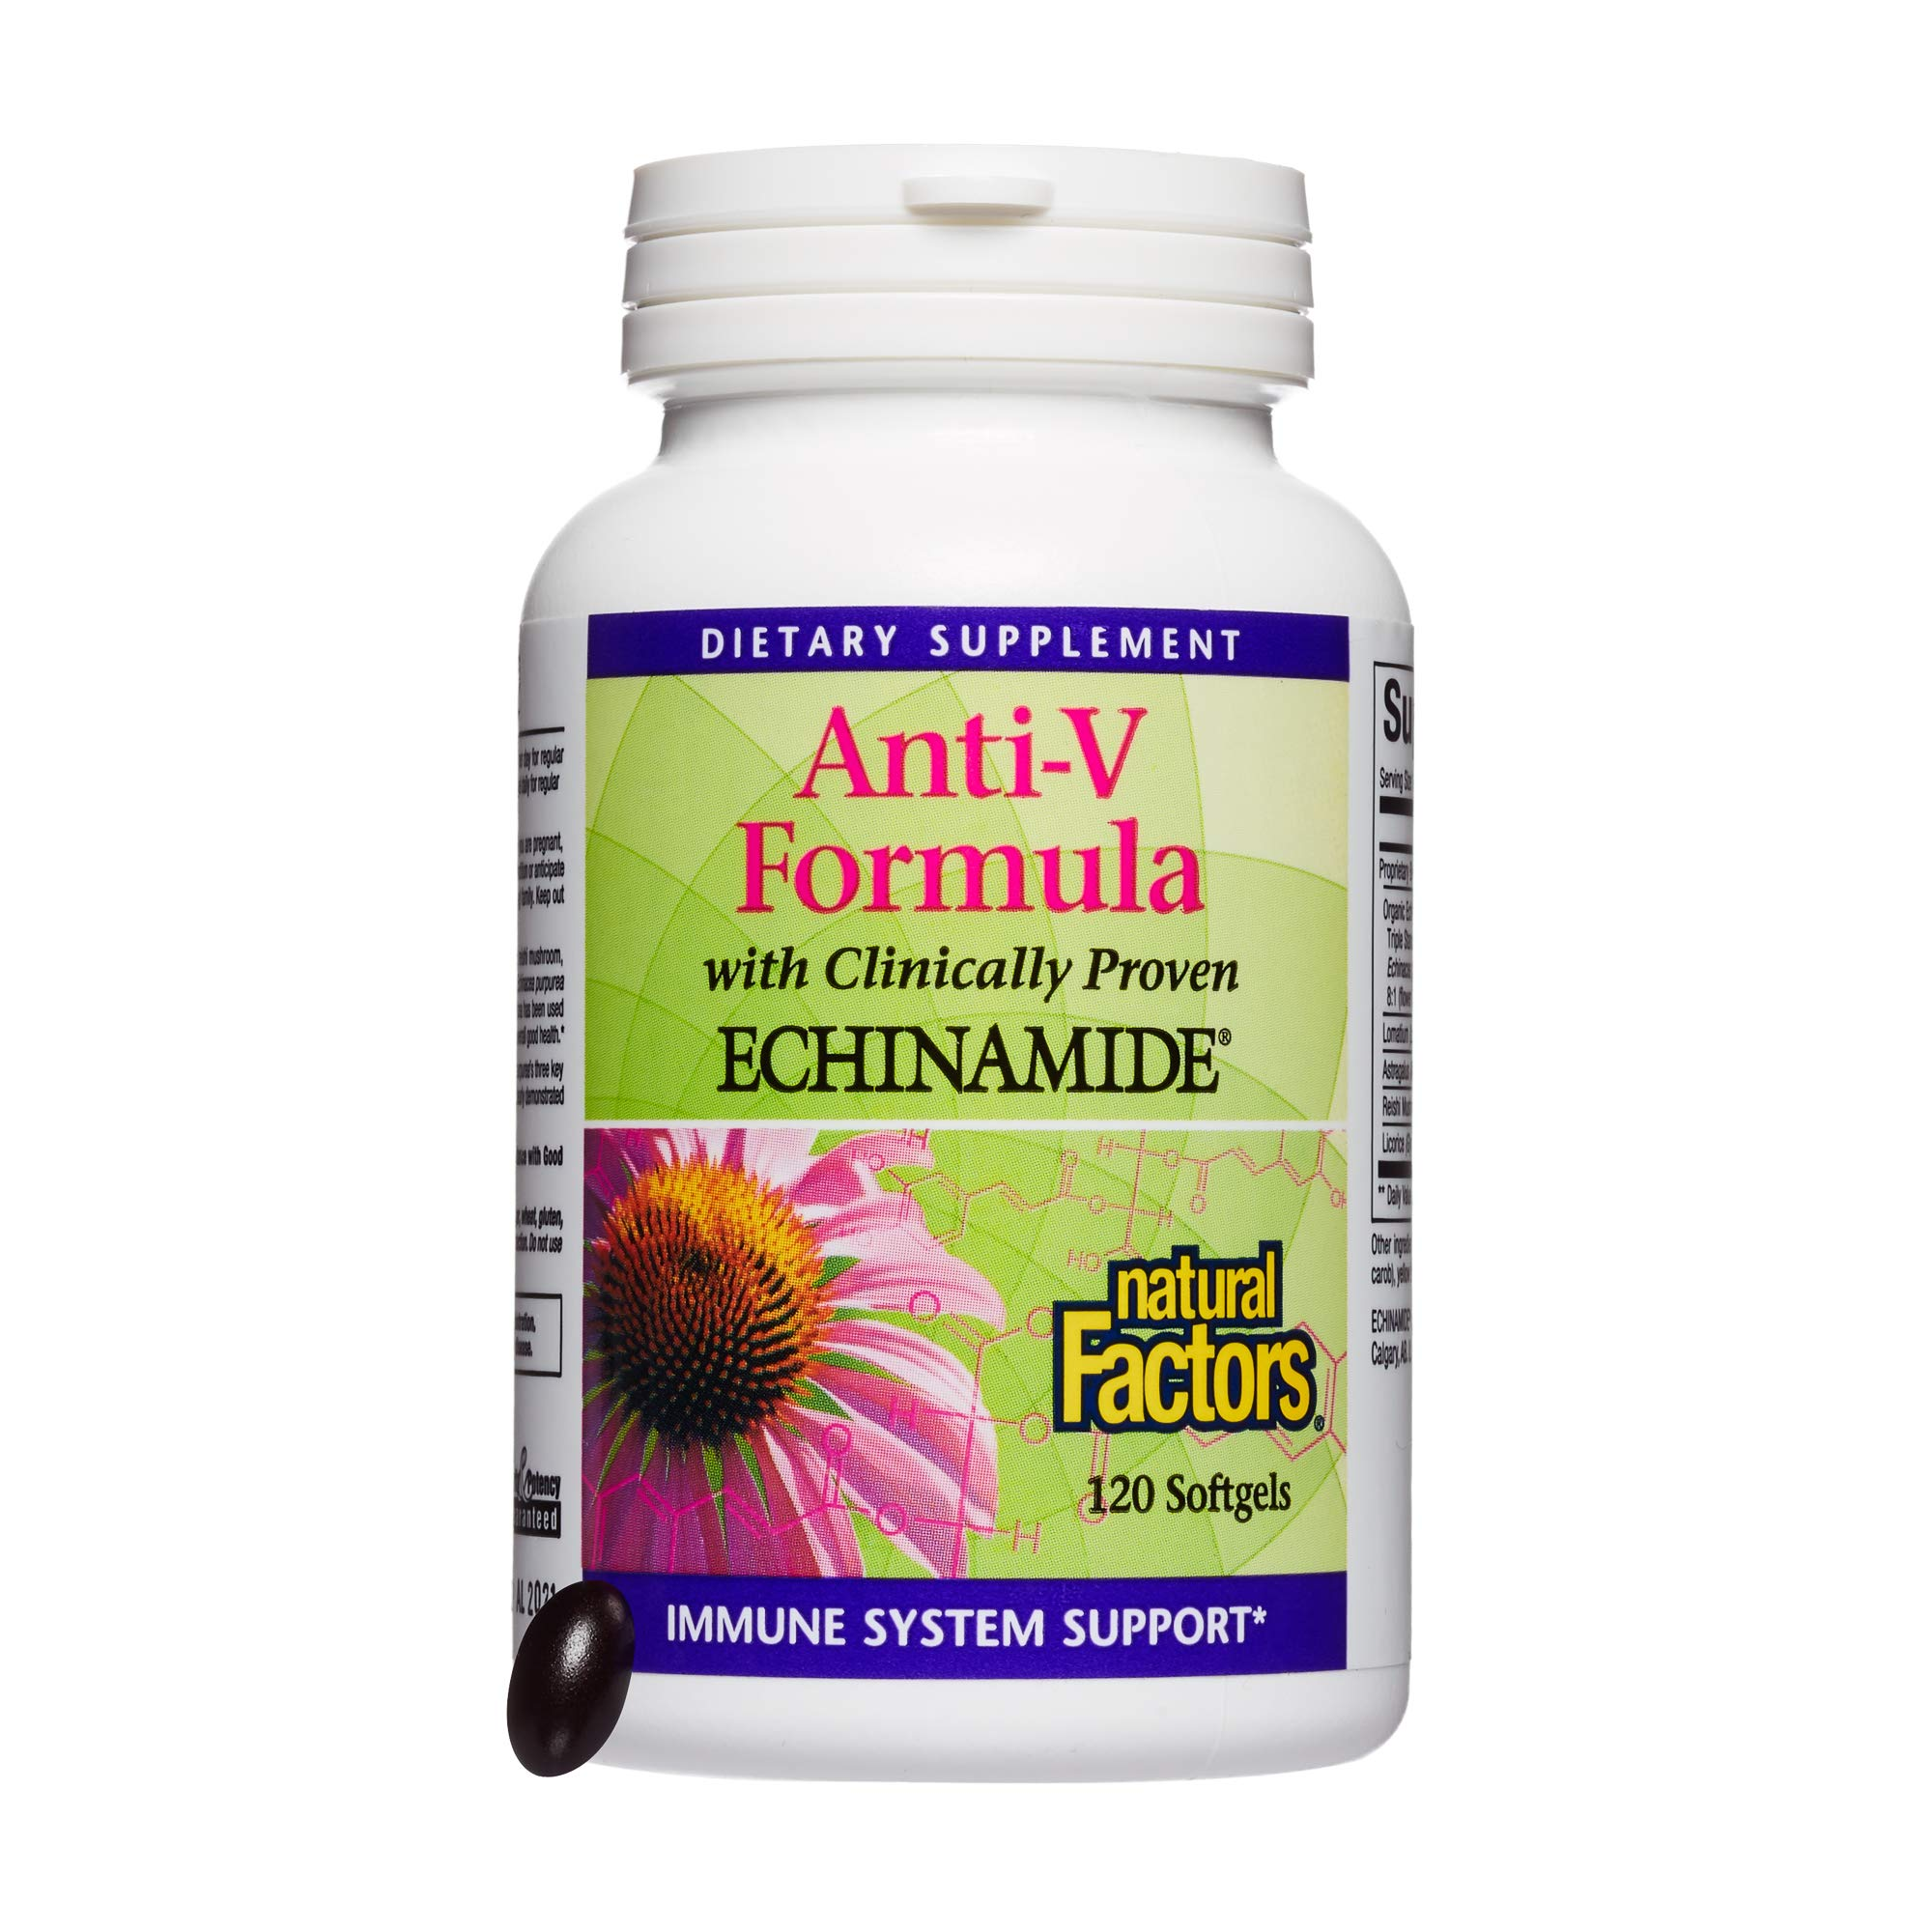 Natural Factors - Anti-V Formula with Echinamide, Immune System Support, 120 Soft Gels